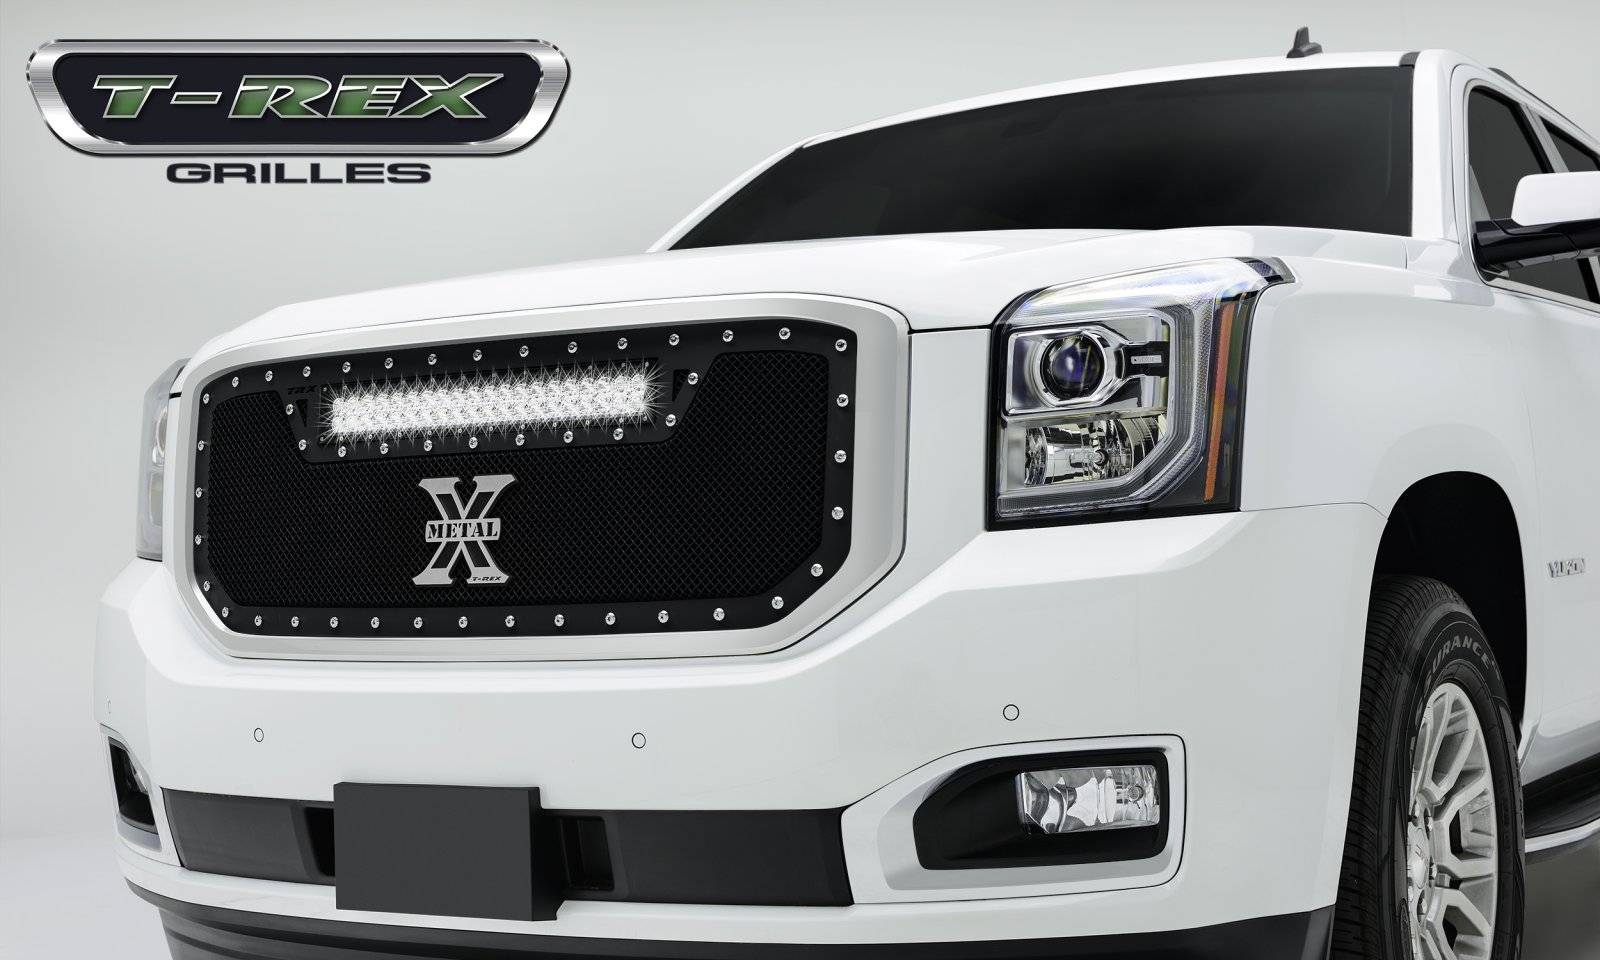 T rex gmc yukon torch series led light grille 1 20 led bar formed mesh grille main insert 1 pc black powdercoated mild steel for off road use only